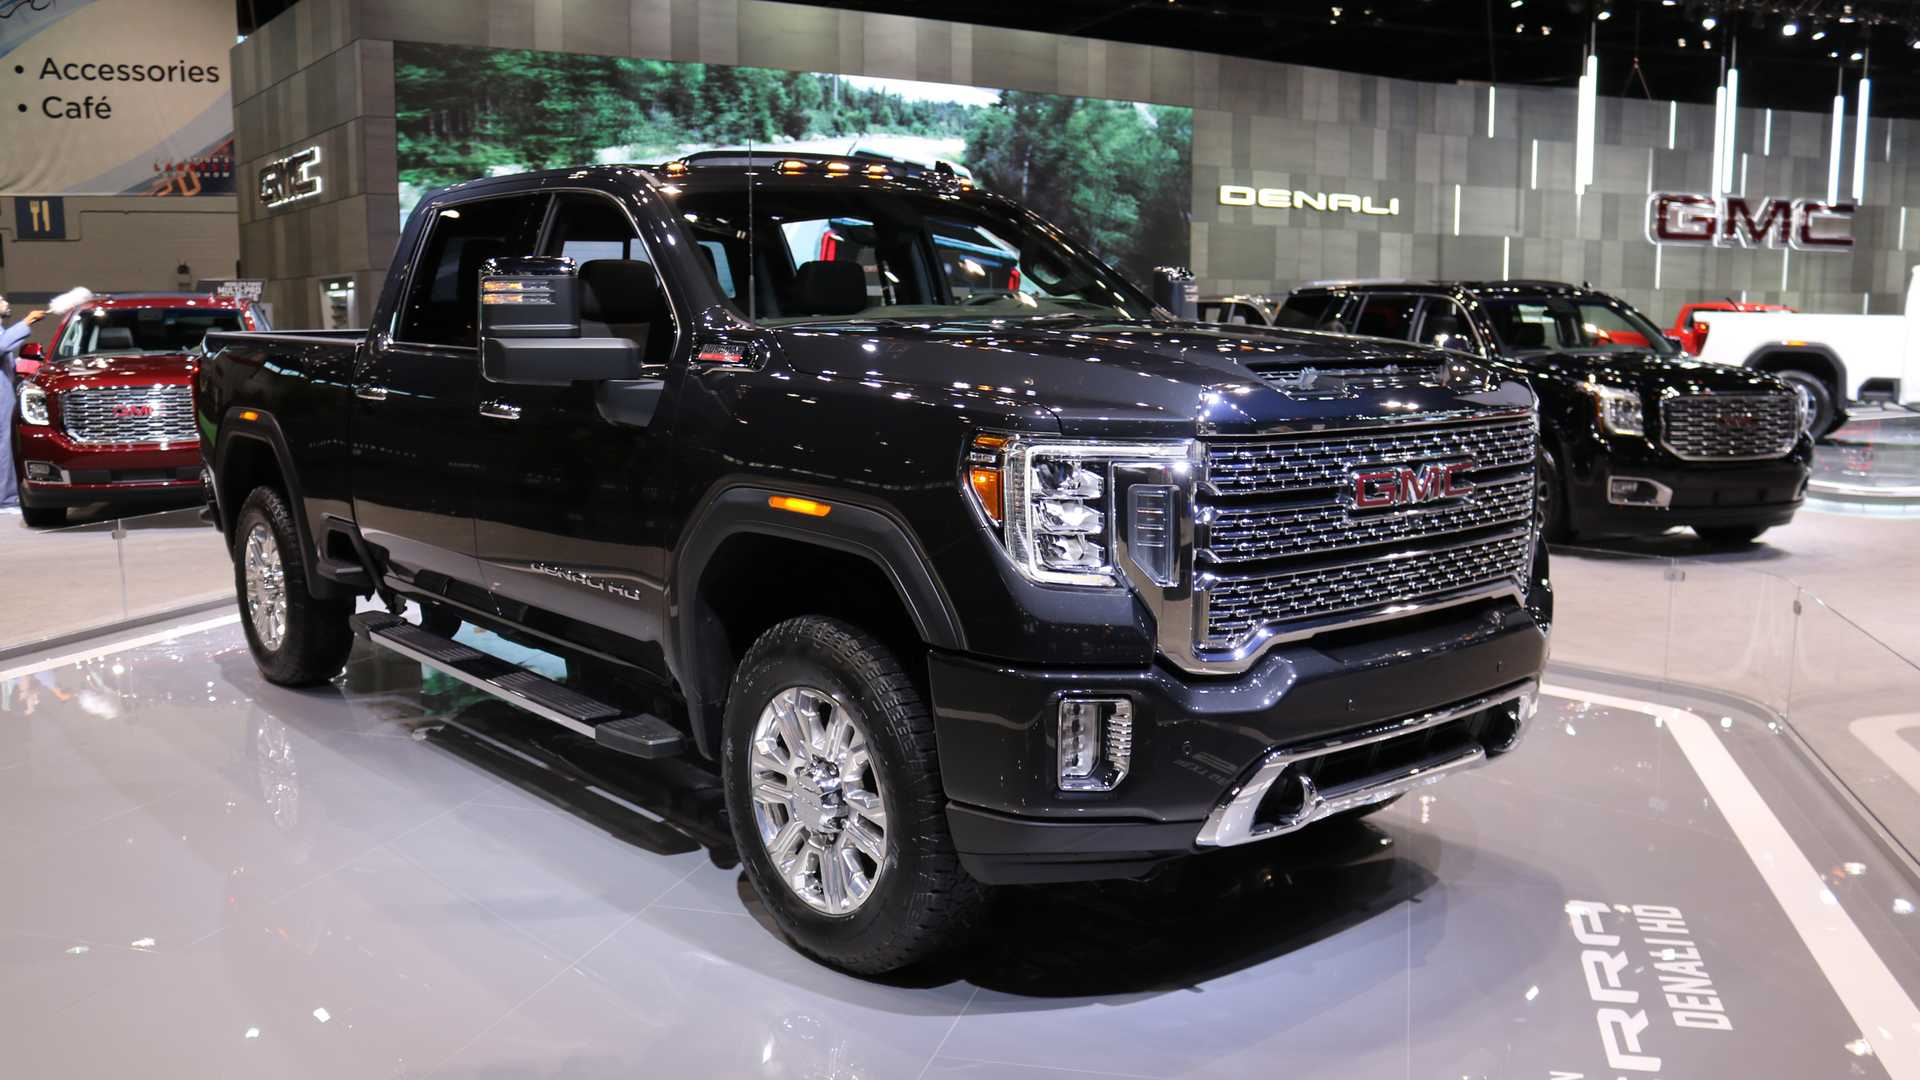 42 New 2020 Gmc Sierra Engines Photos with 2020 Gmc Sierra Engines